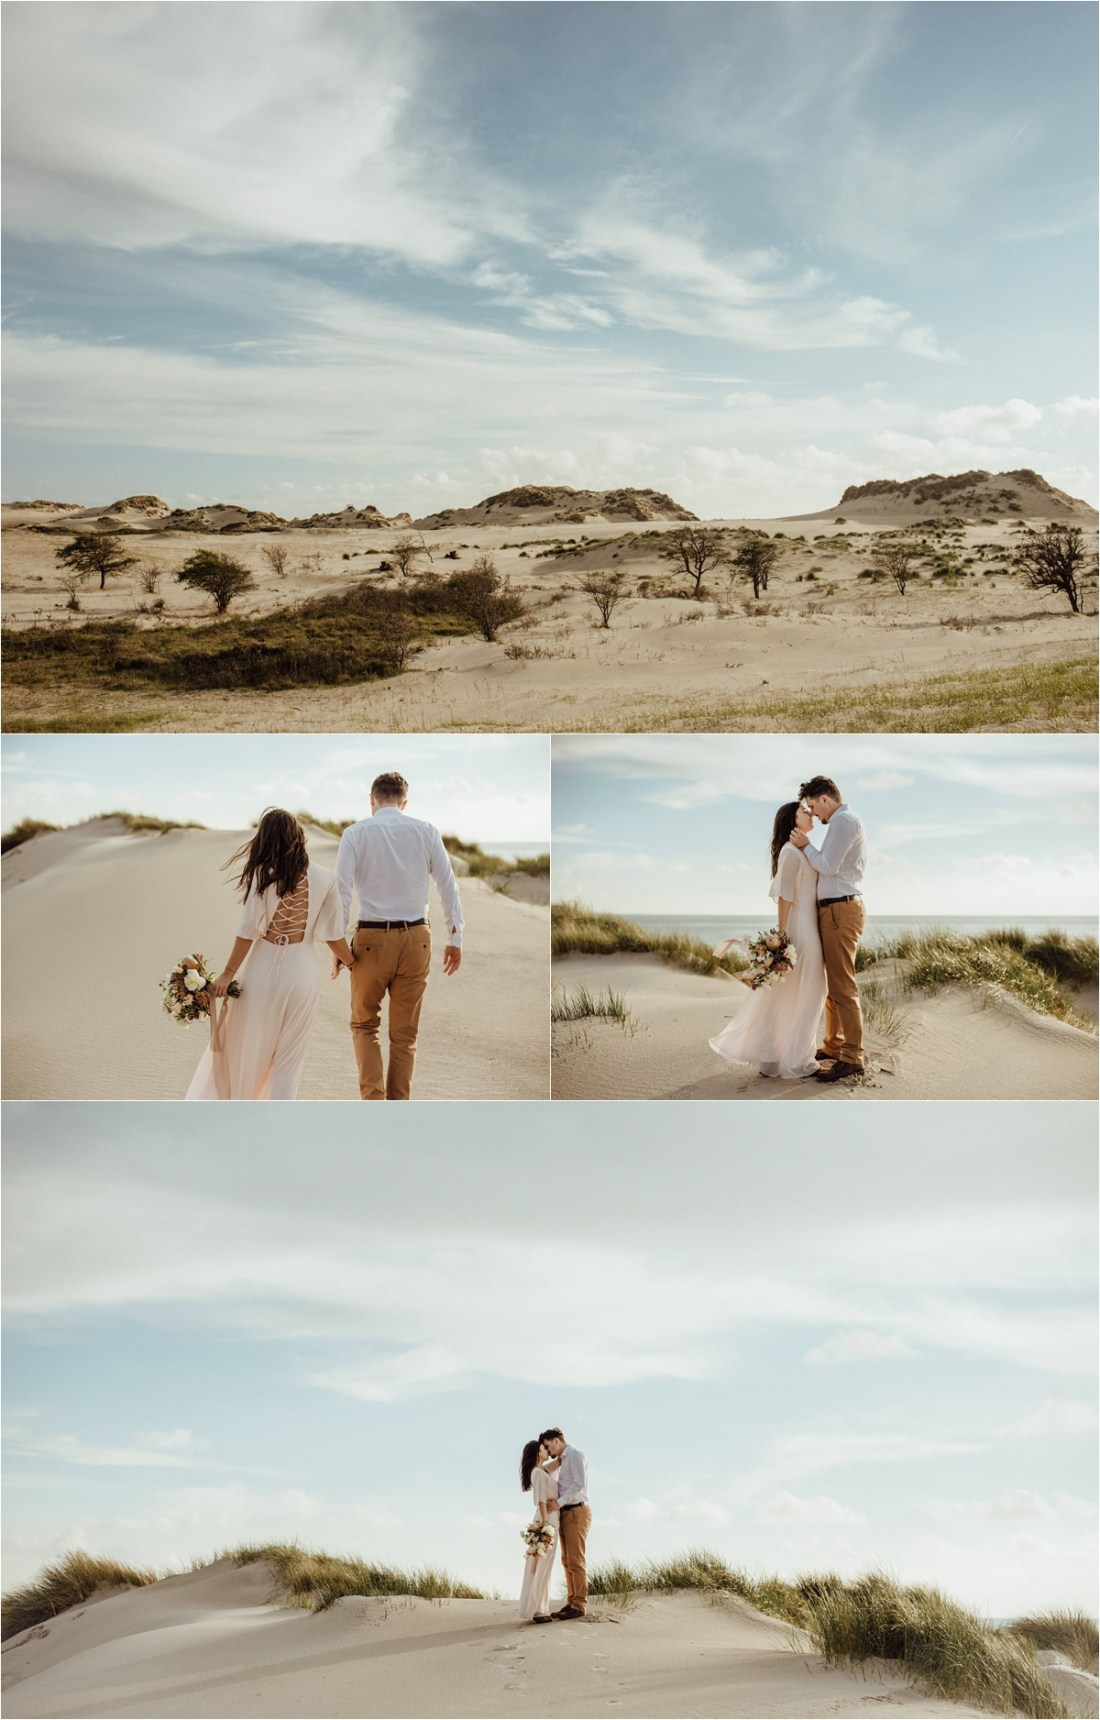 Newlyweds hike across the sand dunes in the Netherlands. Photography by The Wandering Childe